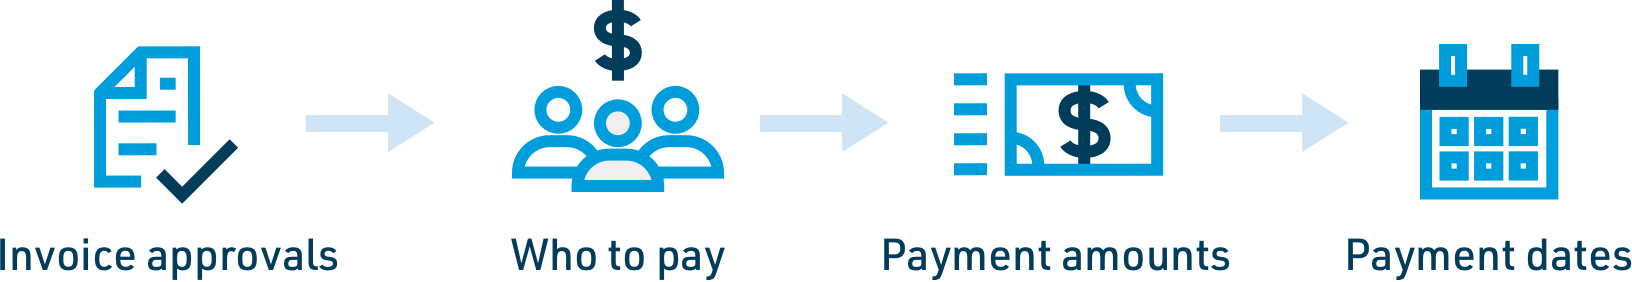 Invoice approvals, who to pay, payment amounts, payment dates